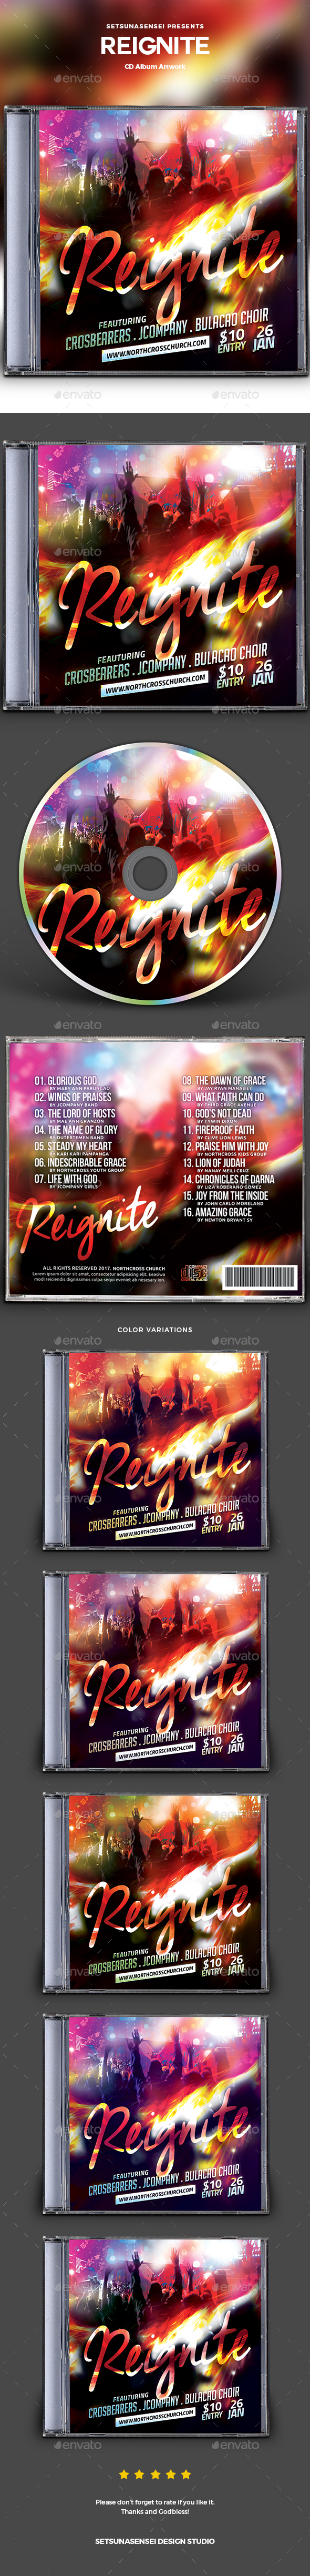 Reignite CD Album Artwork - CD & DVD Artwork Print Templates